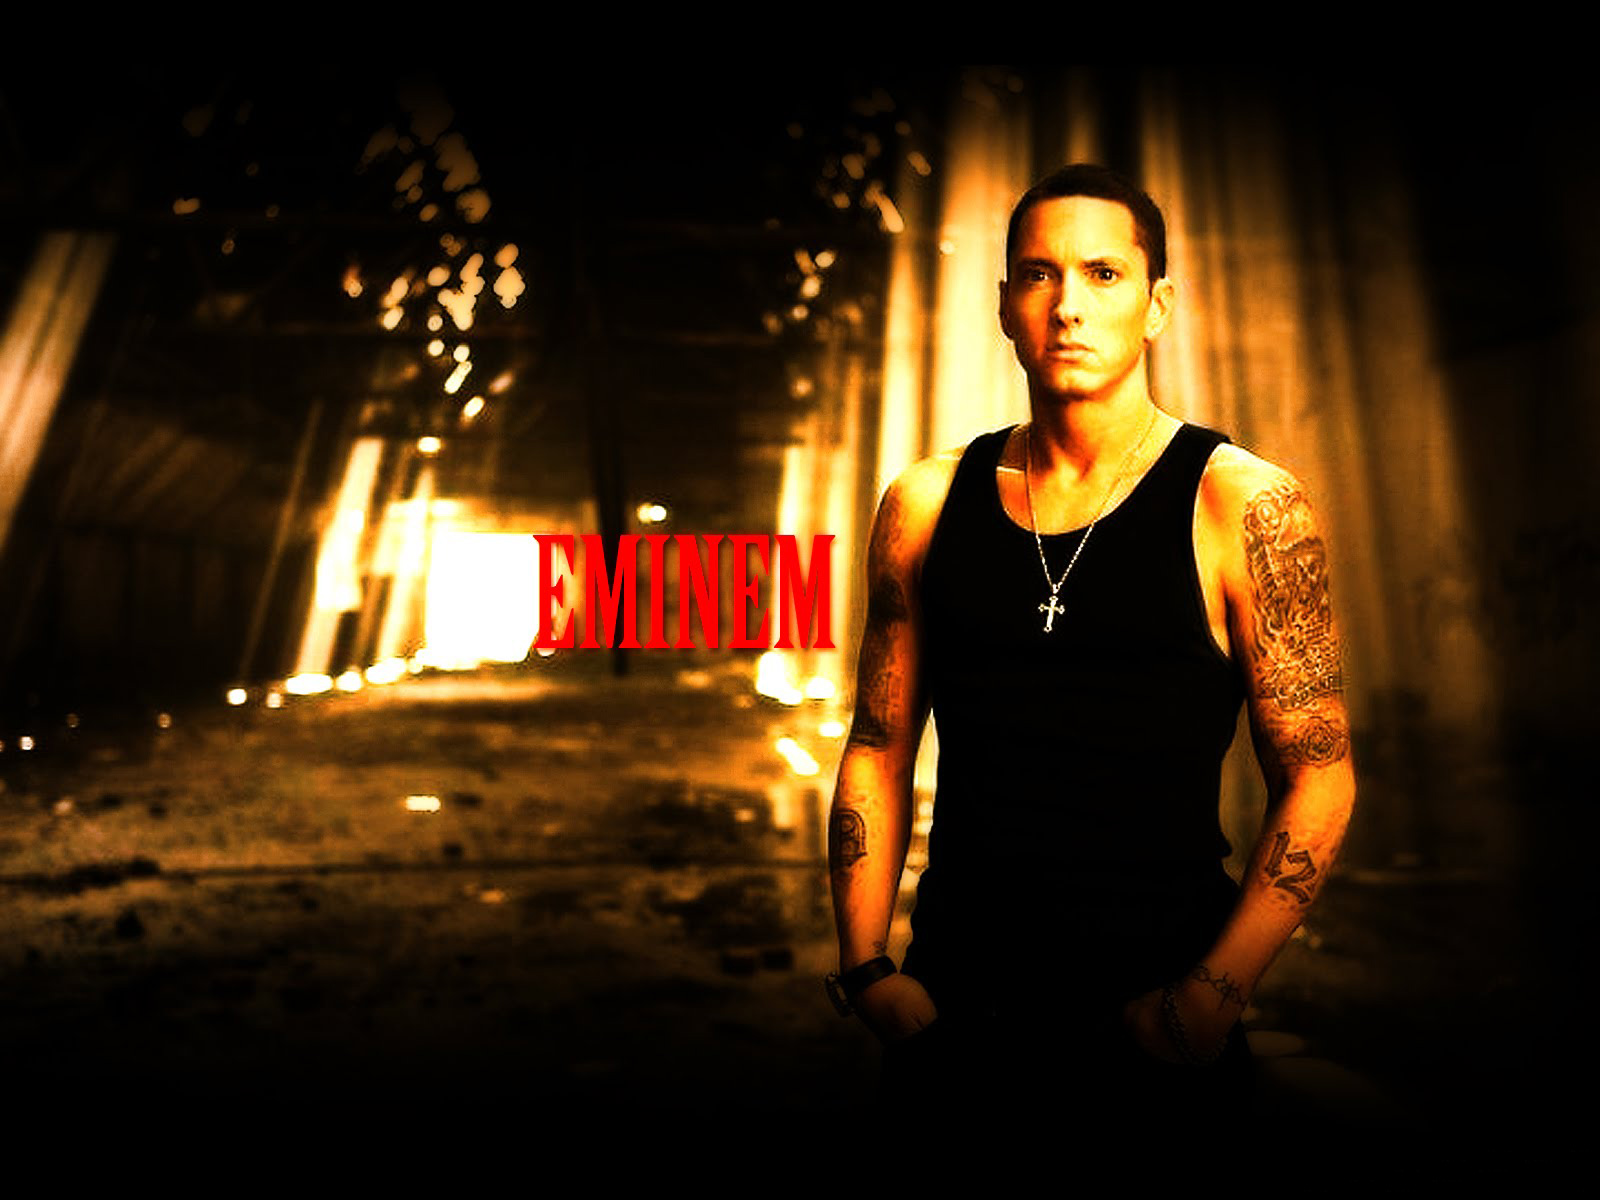 82 <b>Eminem</b> HD <b>Wallpapers</b> | <b>Backgrounds</b> - <b>Wallpaper</b> Abyss